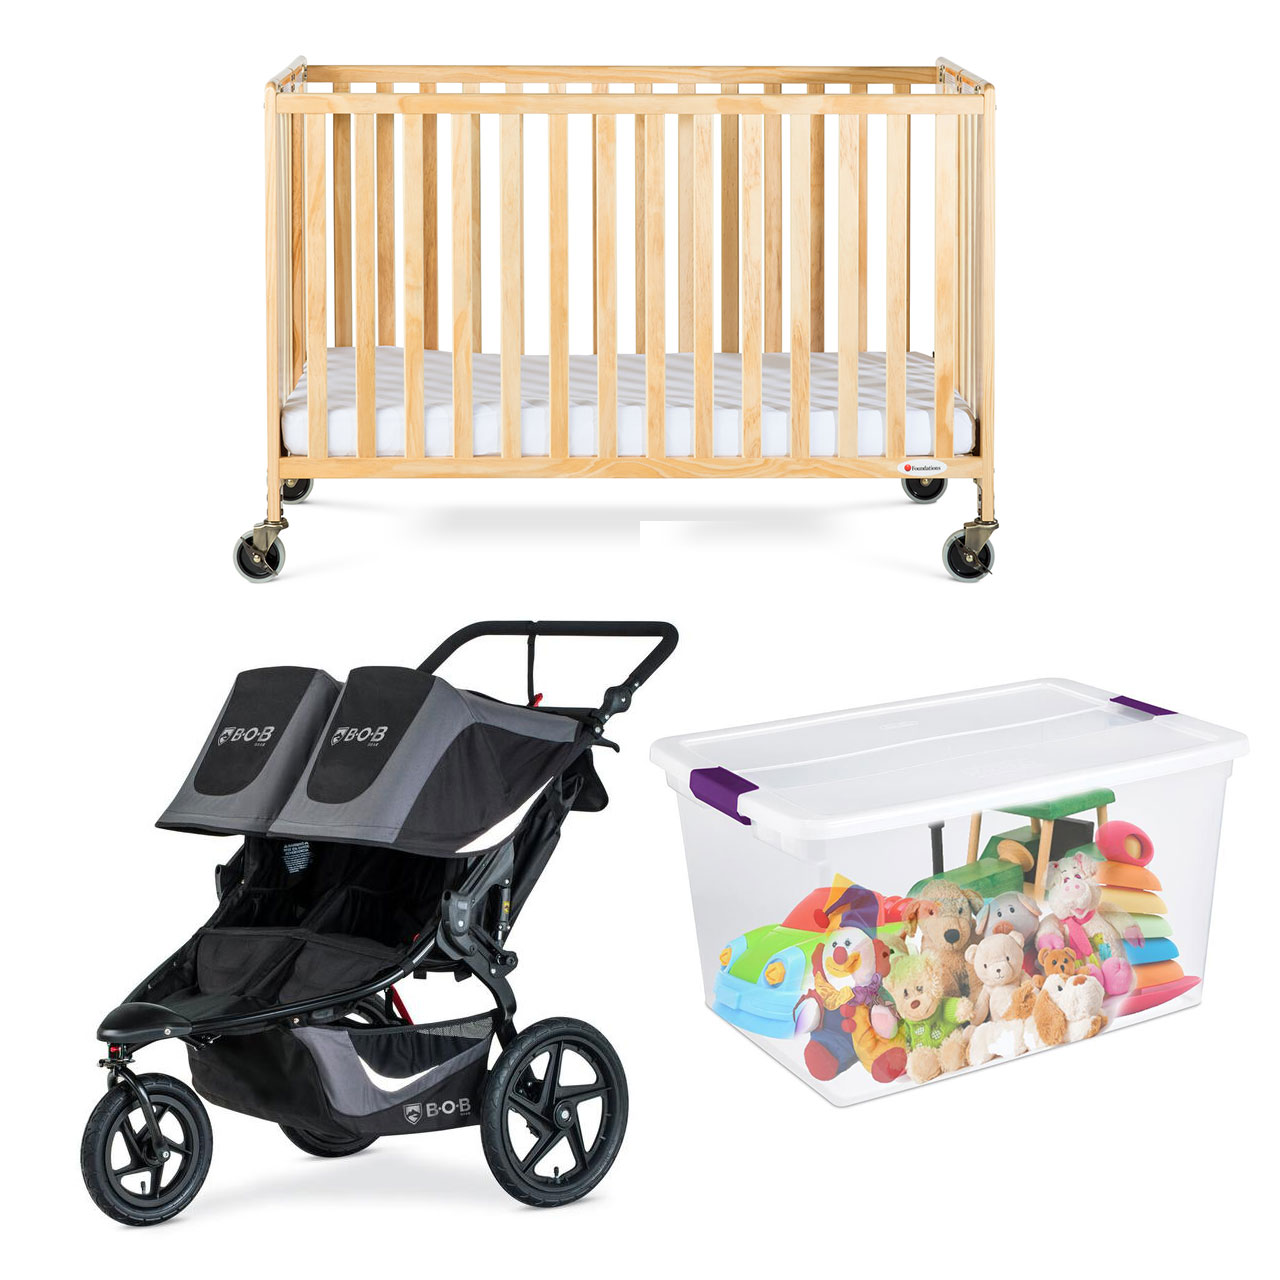 PACKAGE 19  (FULL CRIB, BOB DOUBLE STROLLER, BUCKET OF TOYS, HIGH CHAIR)